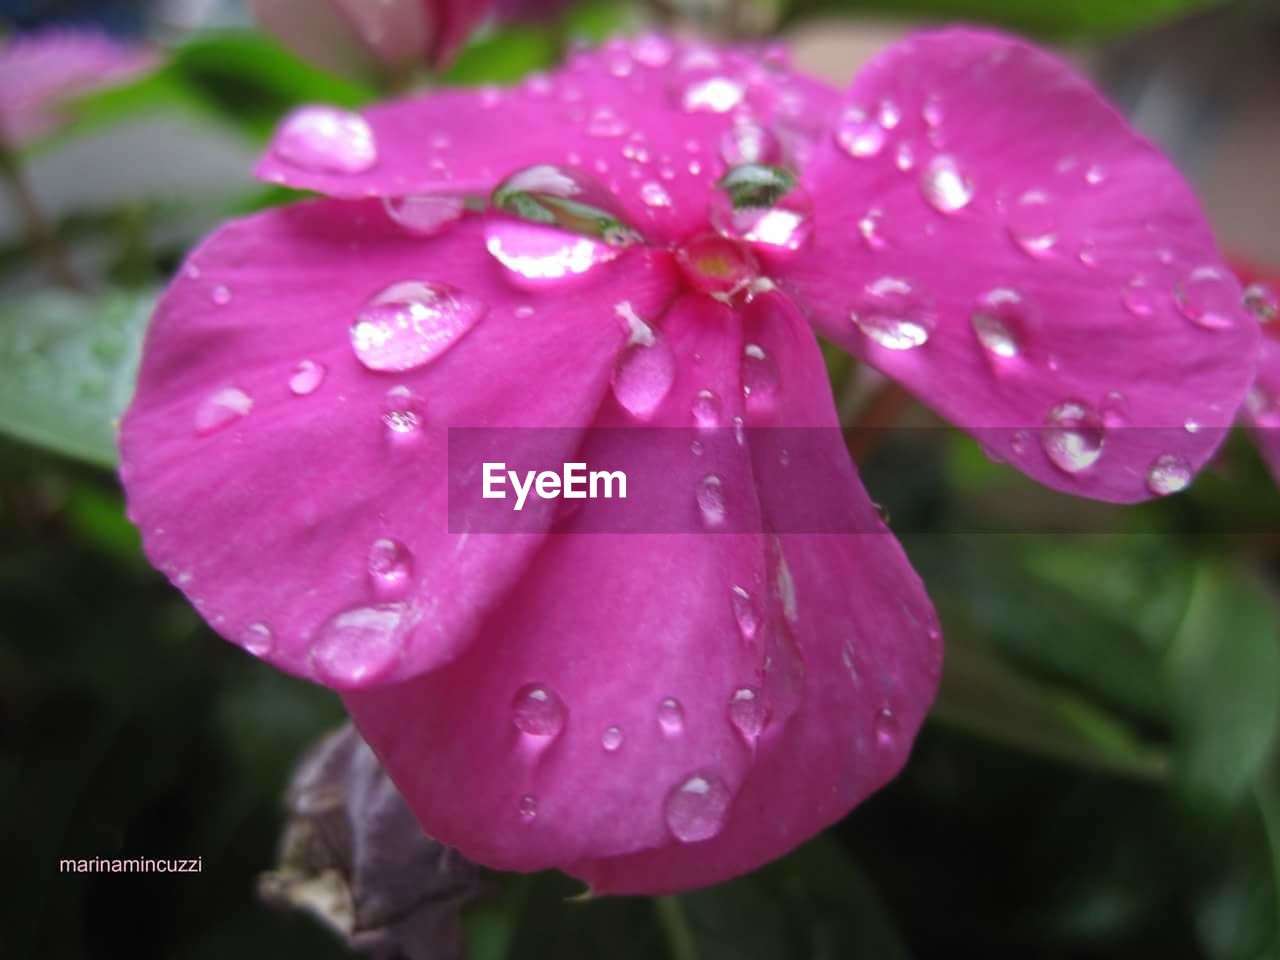 drop, flower, wet, water, petal, beauty in nature, nature, fragility, growth, flower head, raindrop, pink color, freshness, outdoors, close-up, day, focus on foreground, no people, blooming, plant, periwinkle